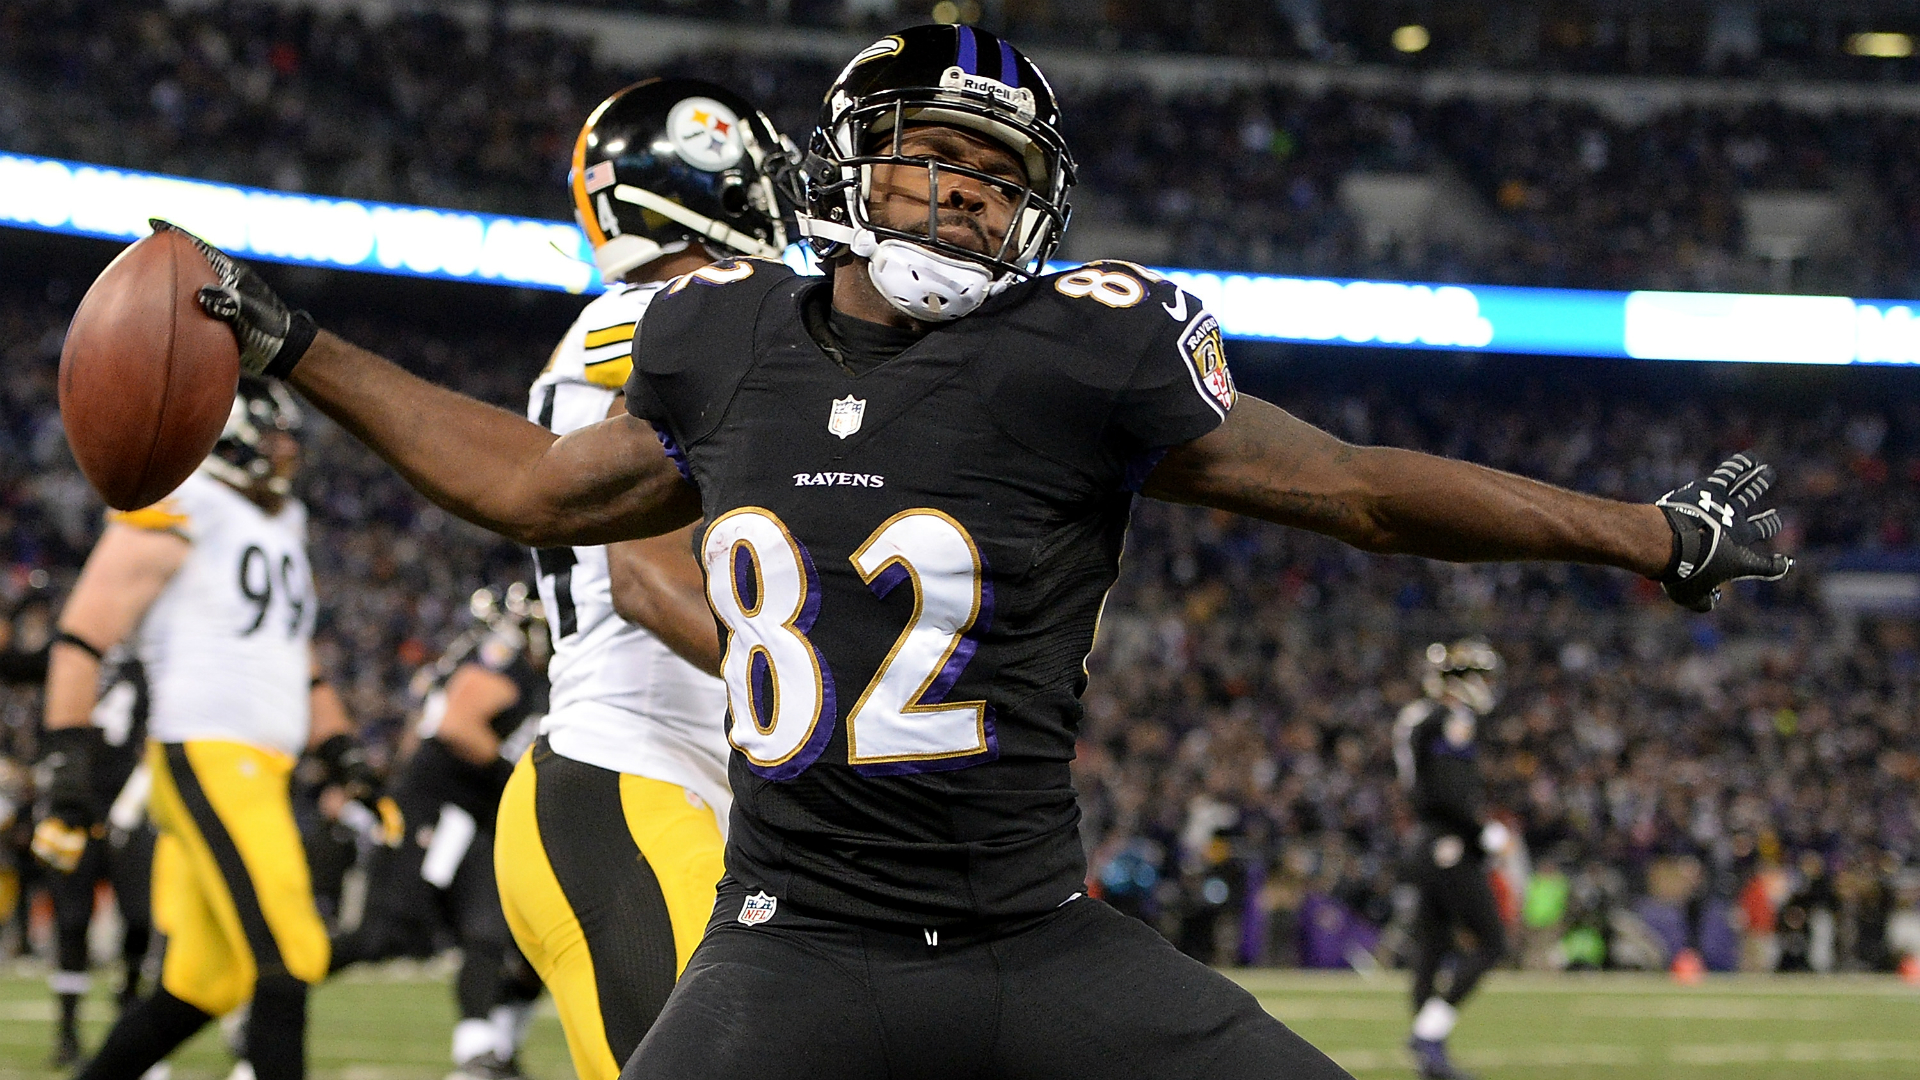 Torrey Smith announces NFL retirement, will return to Baltimore to continue community work